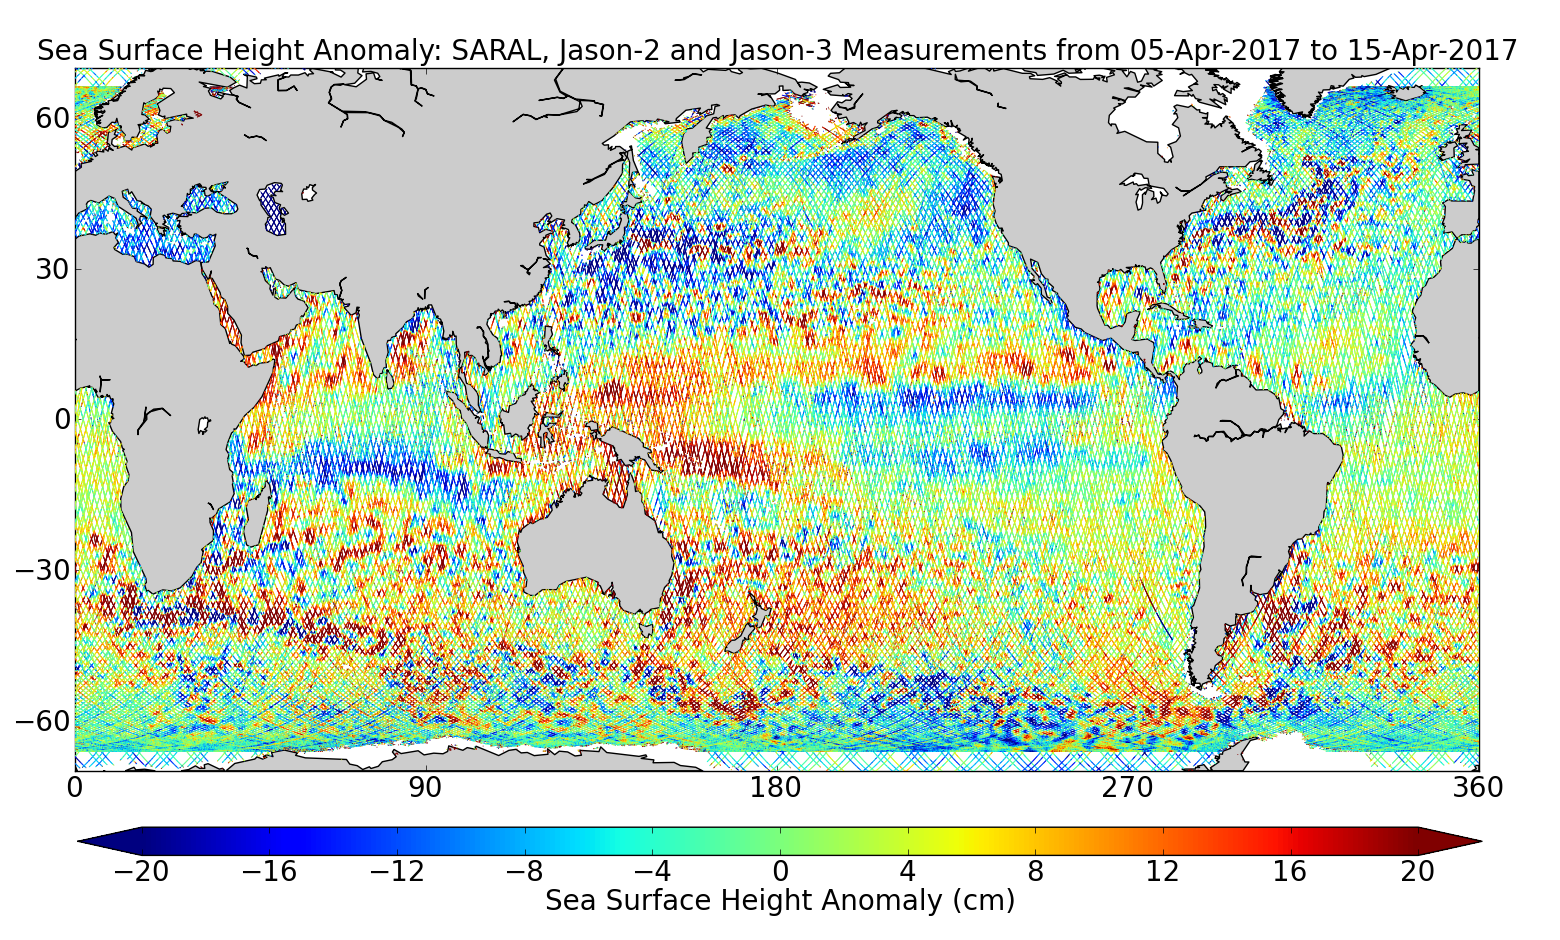 Sea Surface Height Anomaly: SARAL, Jason-2 and Jason-3 Measurements from 05-Apr-2017 to 15-Apr-2017